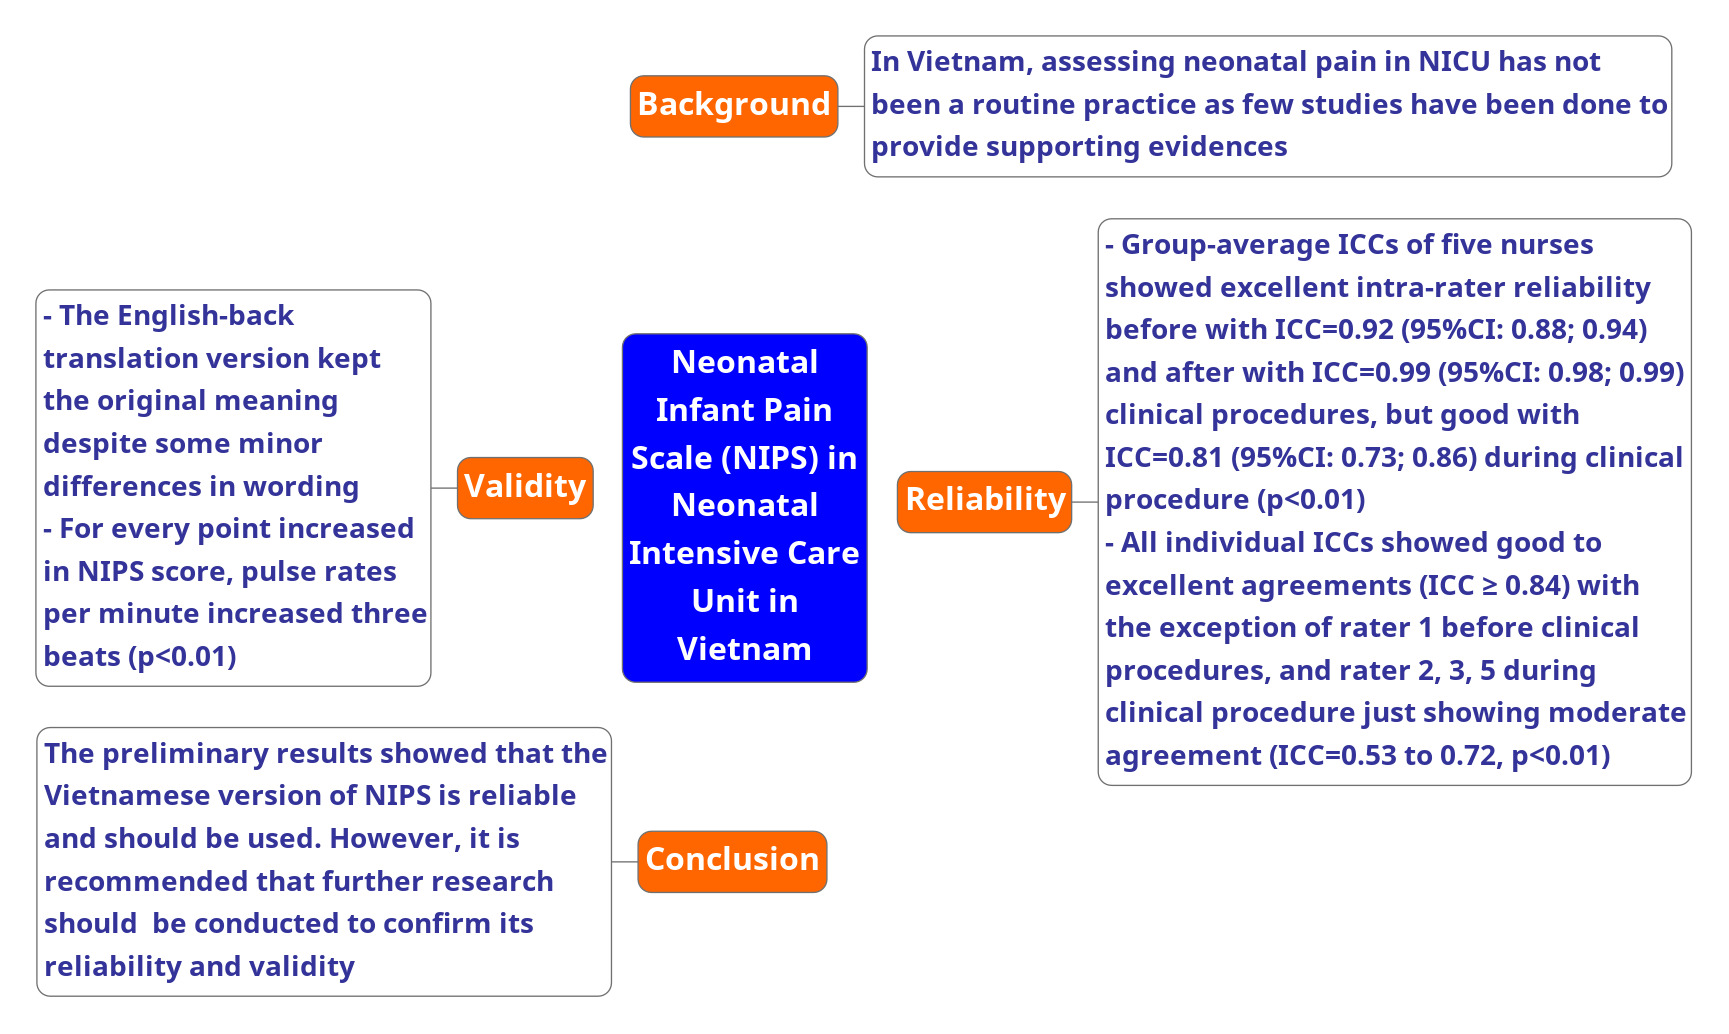 /Assets/images/NIPS Graphical Abstract.png,validity-and-reliability-of-neonatal-infant-pain-scale-(nips)-in-neonatal-intensive-care-unit-in-vietnam,NIPS; reliability; validity; NICU; Vietnam,nips,reliability,validity,nicu,vietnam,